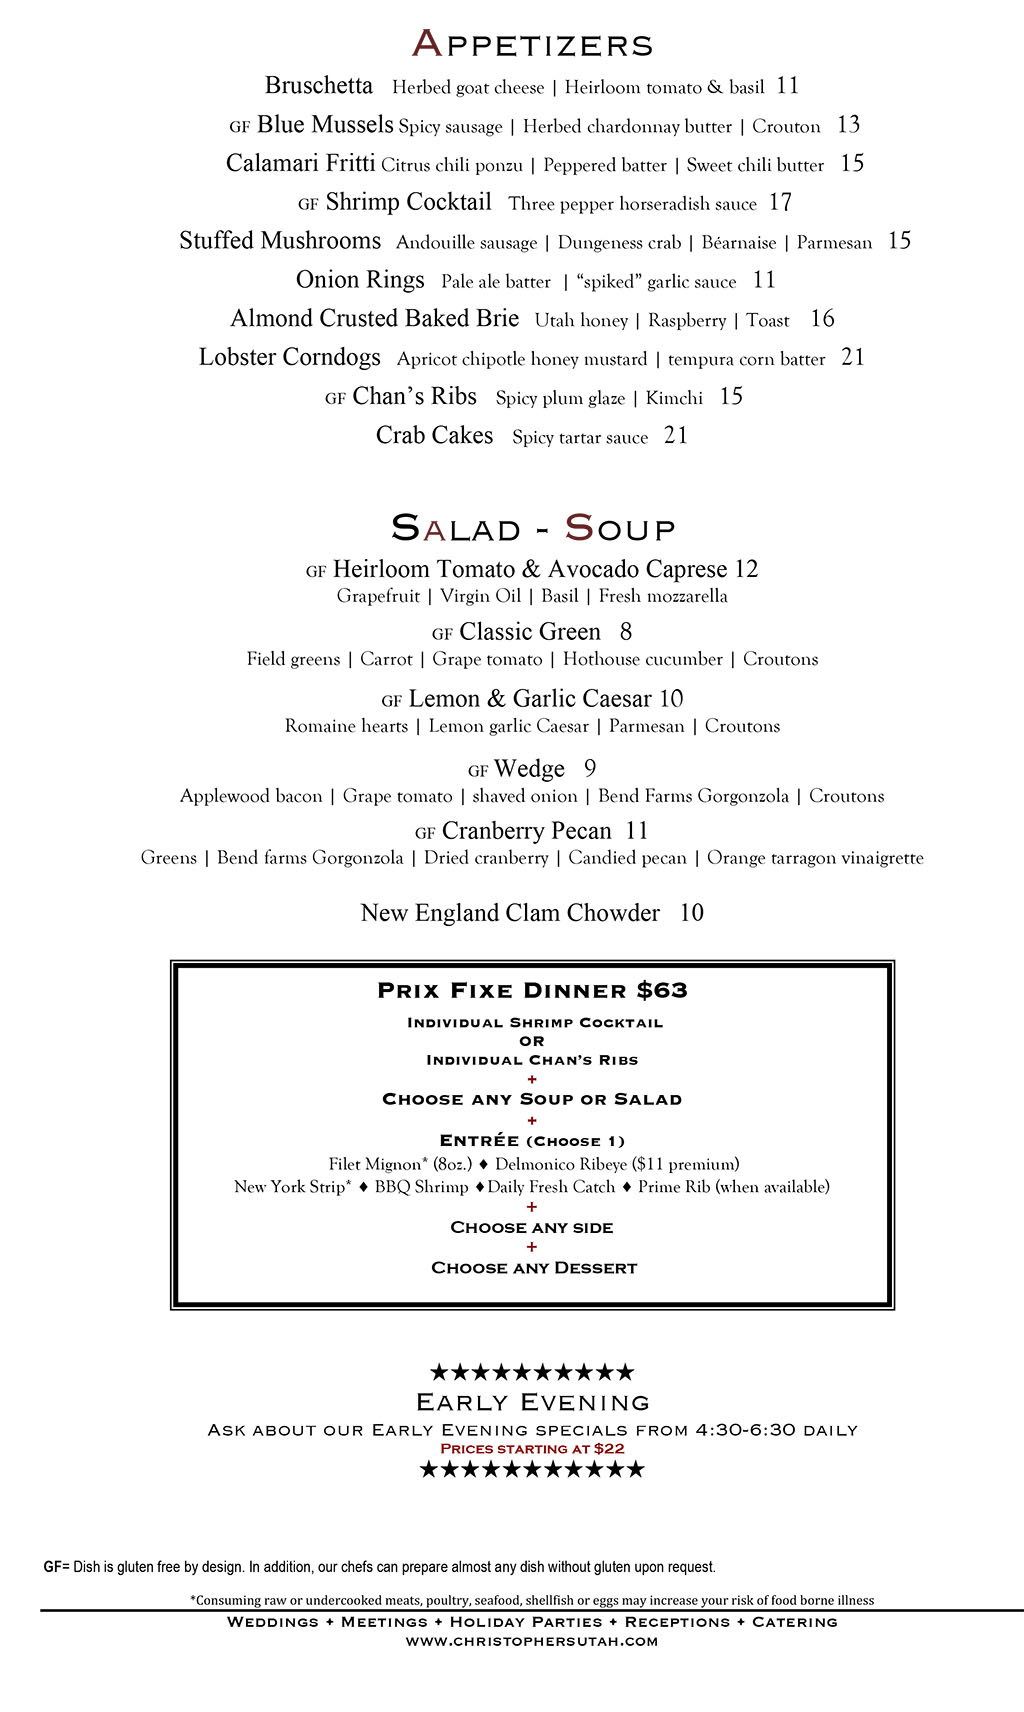 Christophers Steak House menu - appetizers, soup, salad, prix-fixe.jpg